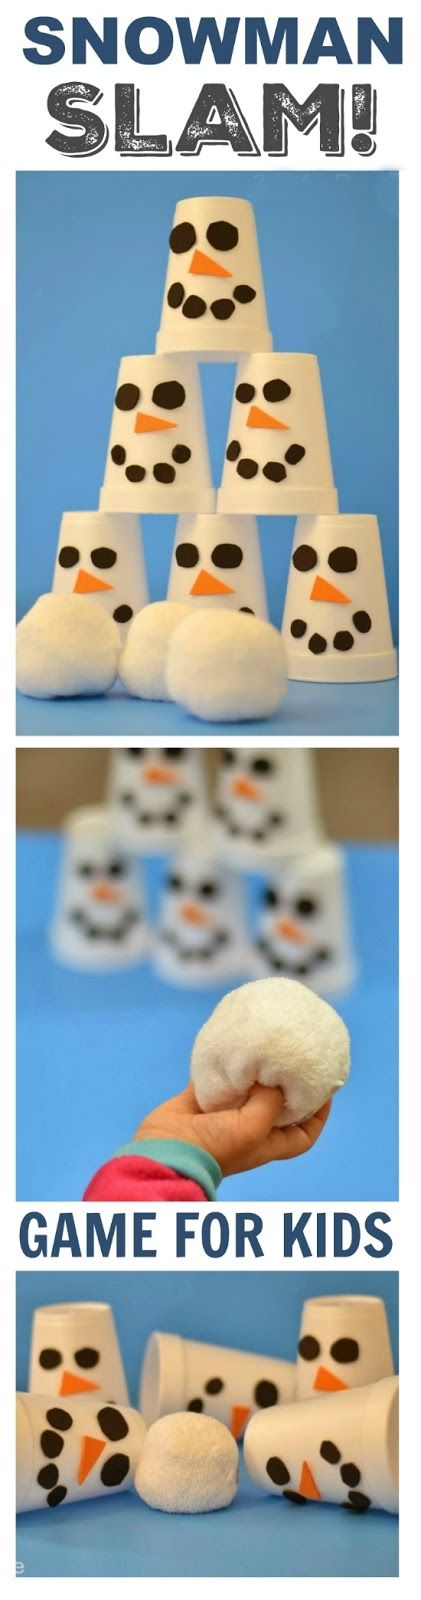 SNOWMAN SLAM! Game for Kids. A great way to get them moving indoors